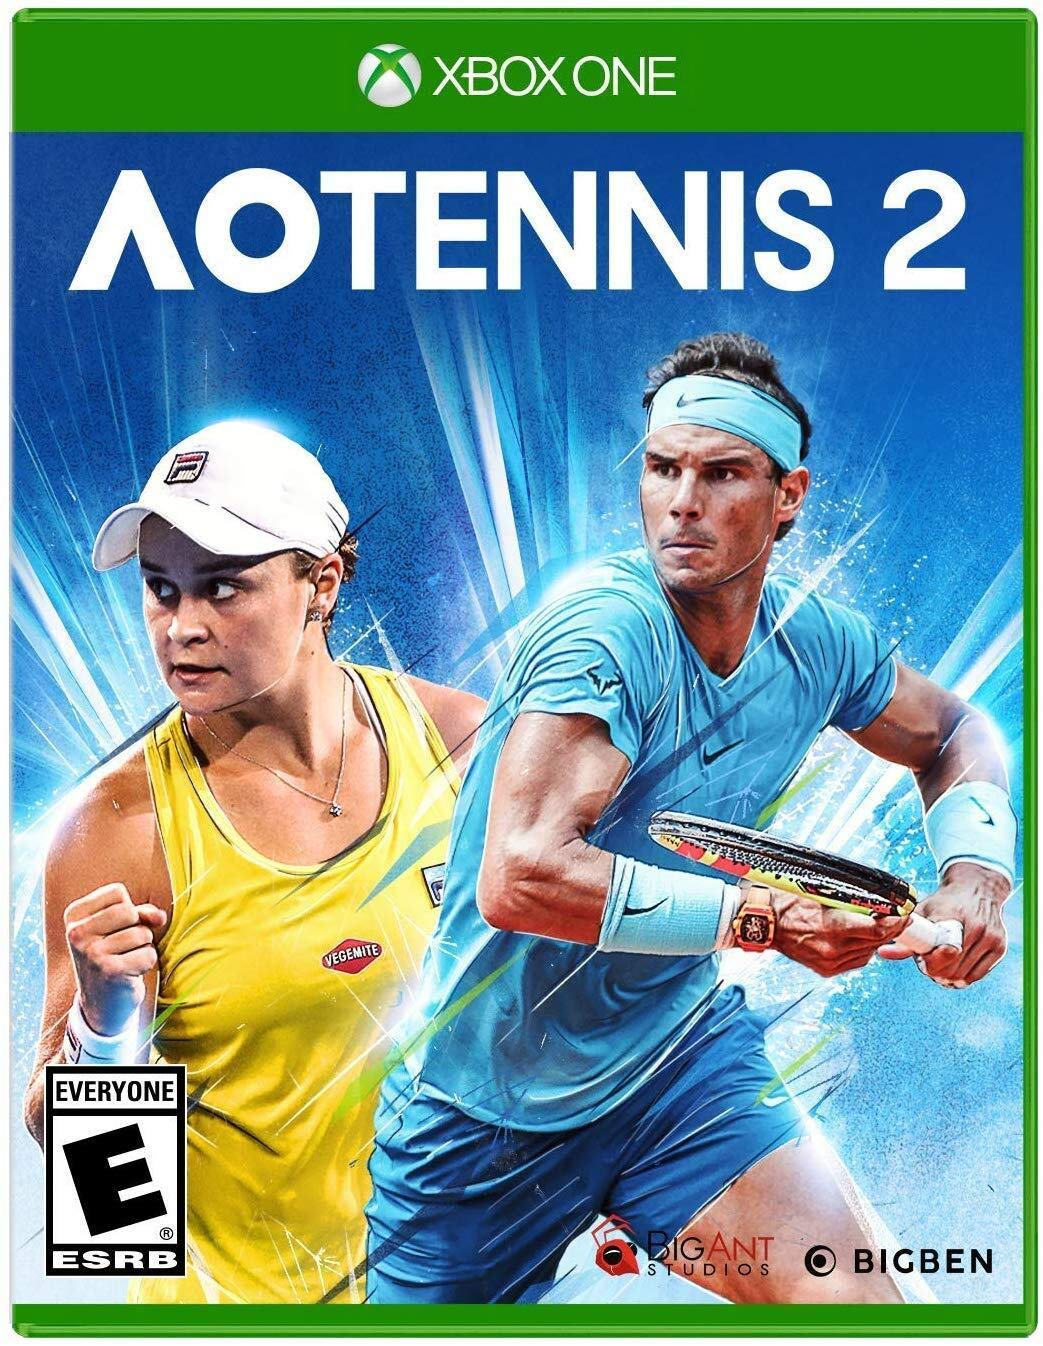 ✅ AO Tennis 2 XBOX ONE KEY 🏸 Digital code 🔑